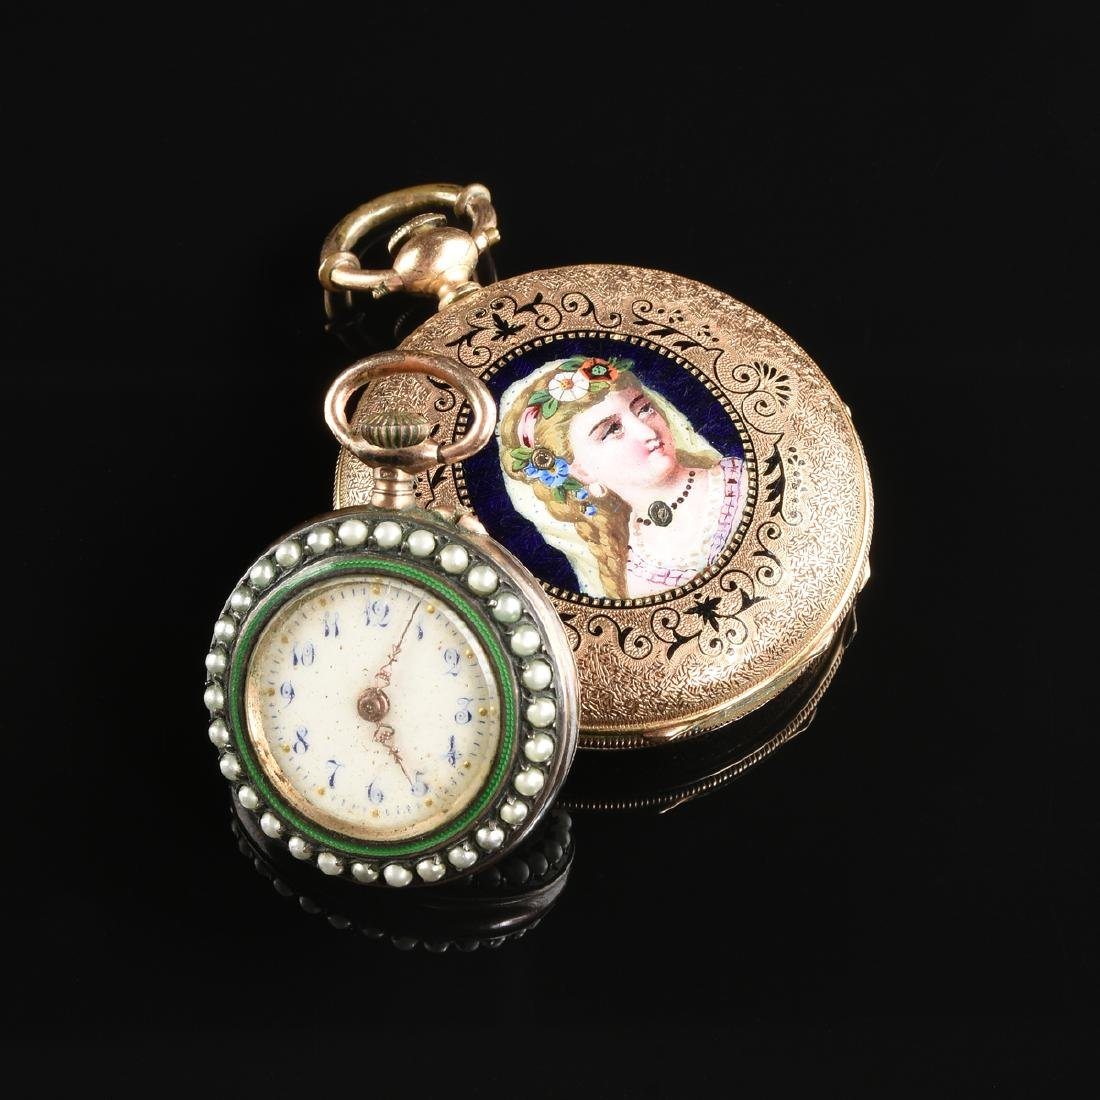 A GROUP OF TWO ENAMELED LADY'S POCKET WATCHES,